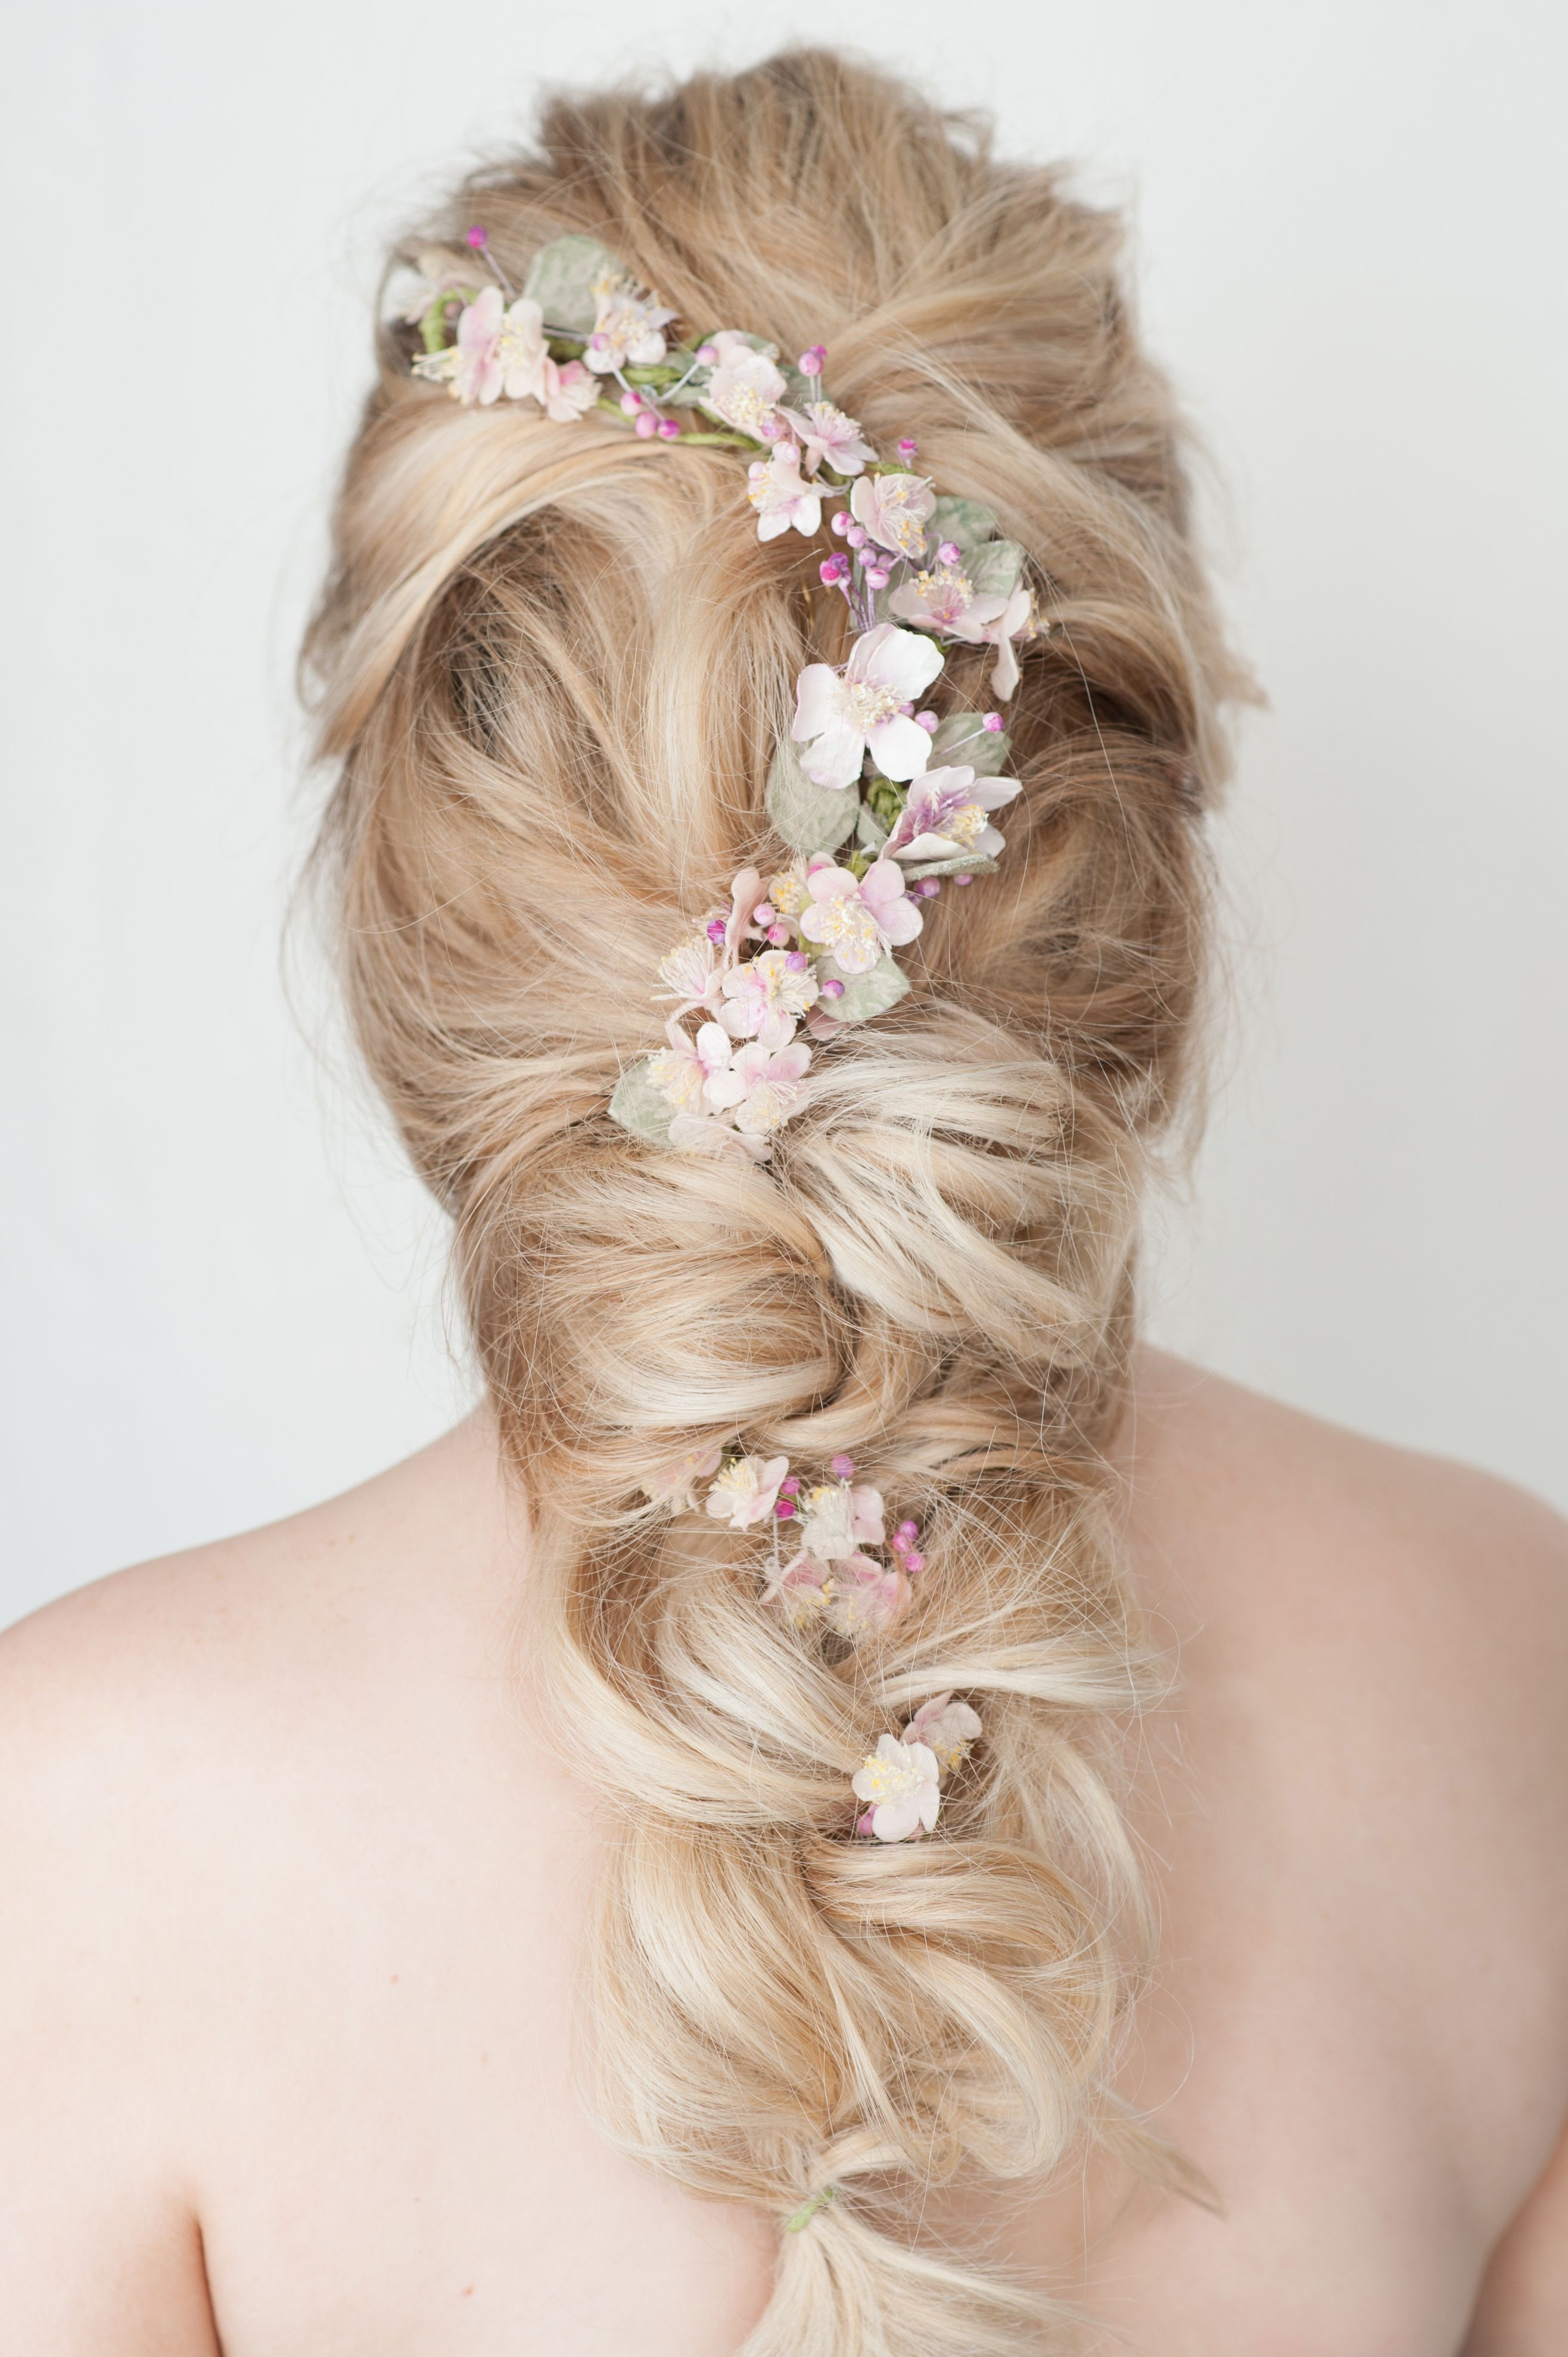 Fashionable Undone Low Bun Bridal Hairstyles With Floral Headband In Bridal Hair. Loose Undone Plait With Flowers. Www (View 3 of 20)